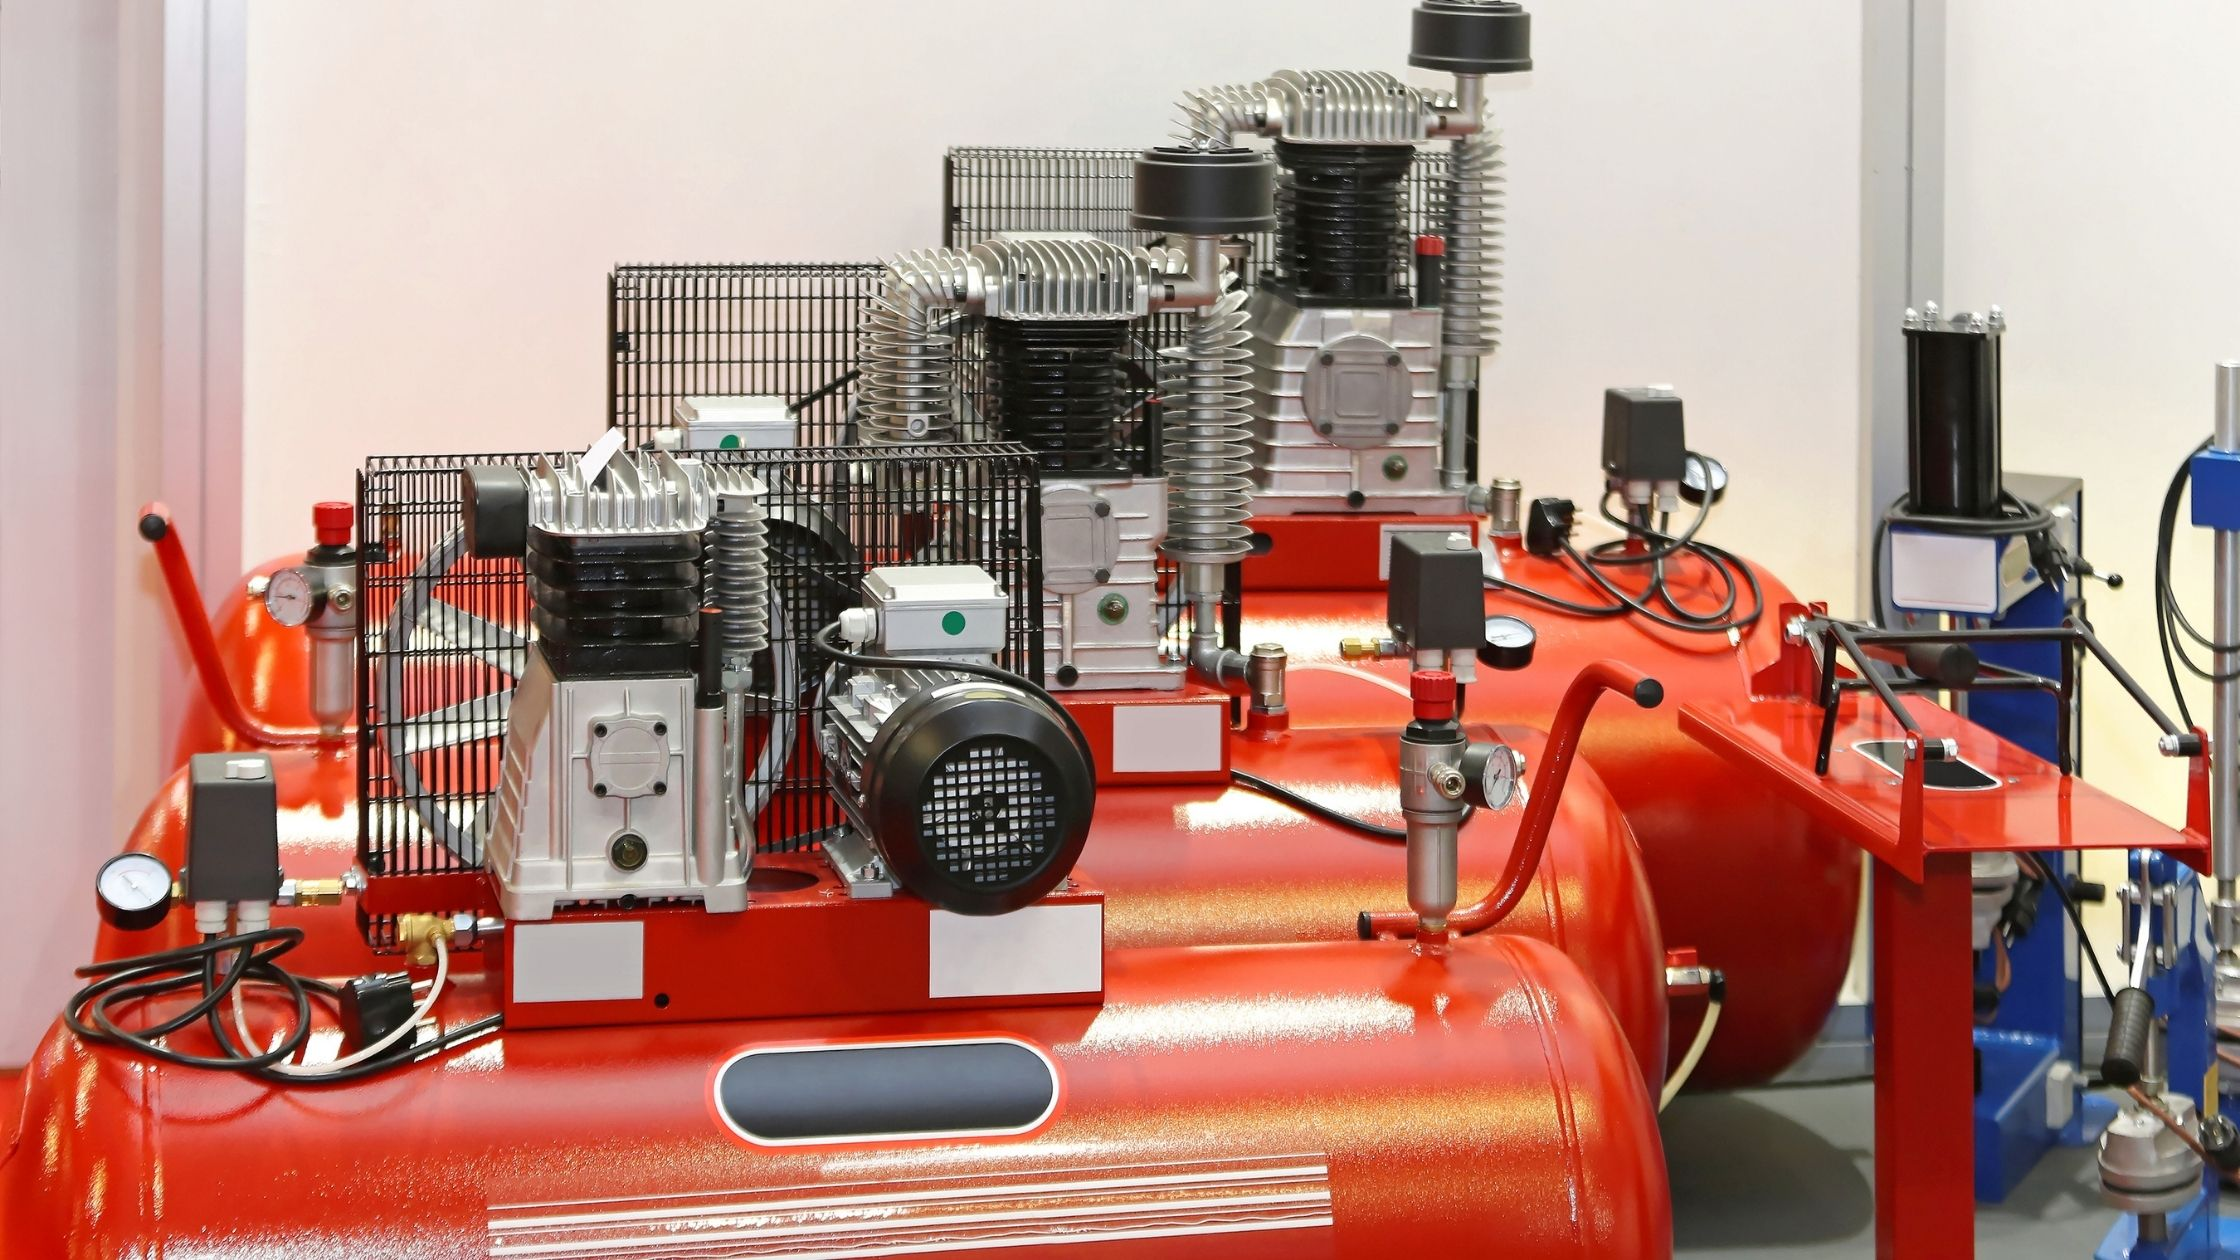 Surprising Uses for Rotary Screw Air Compressors